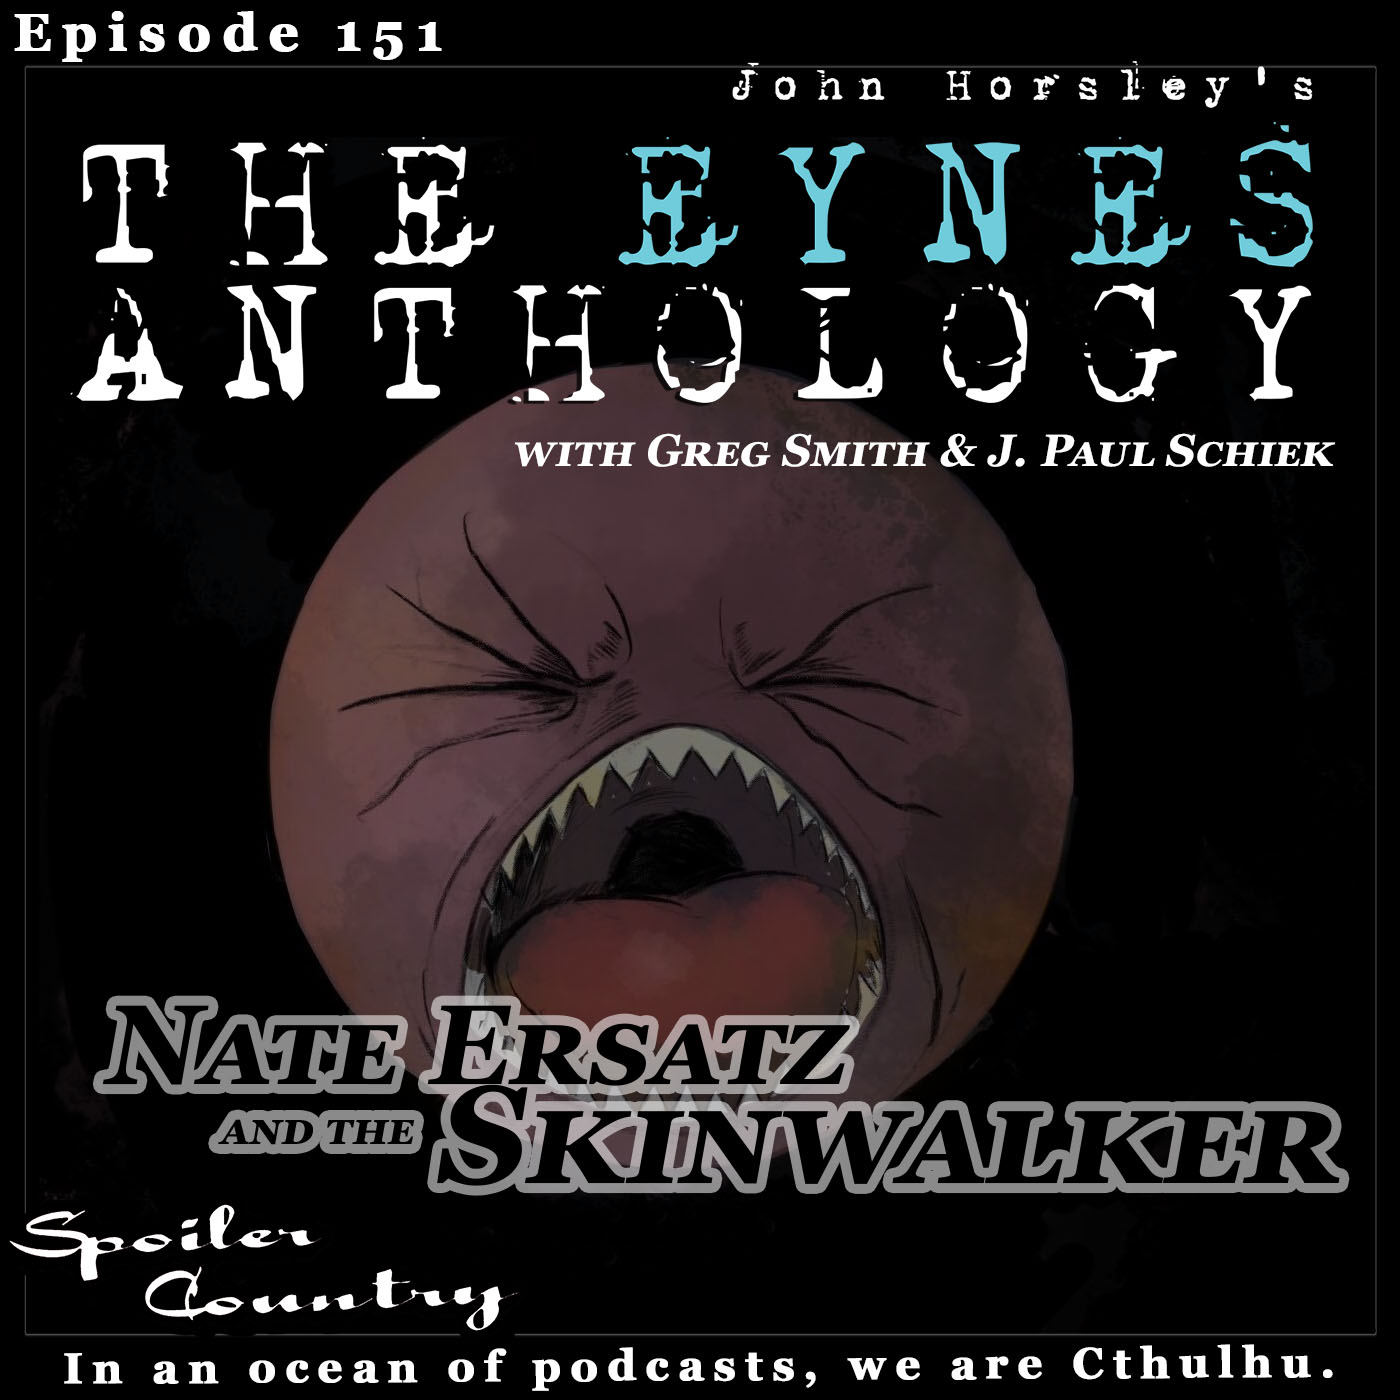 Nate Ersatz and the Skinwalker - Eynes Anthology Interview with Greg Smith and J. Paul Schiek